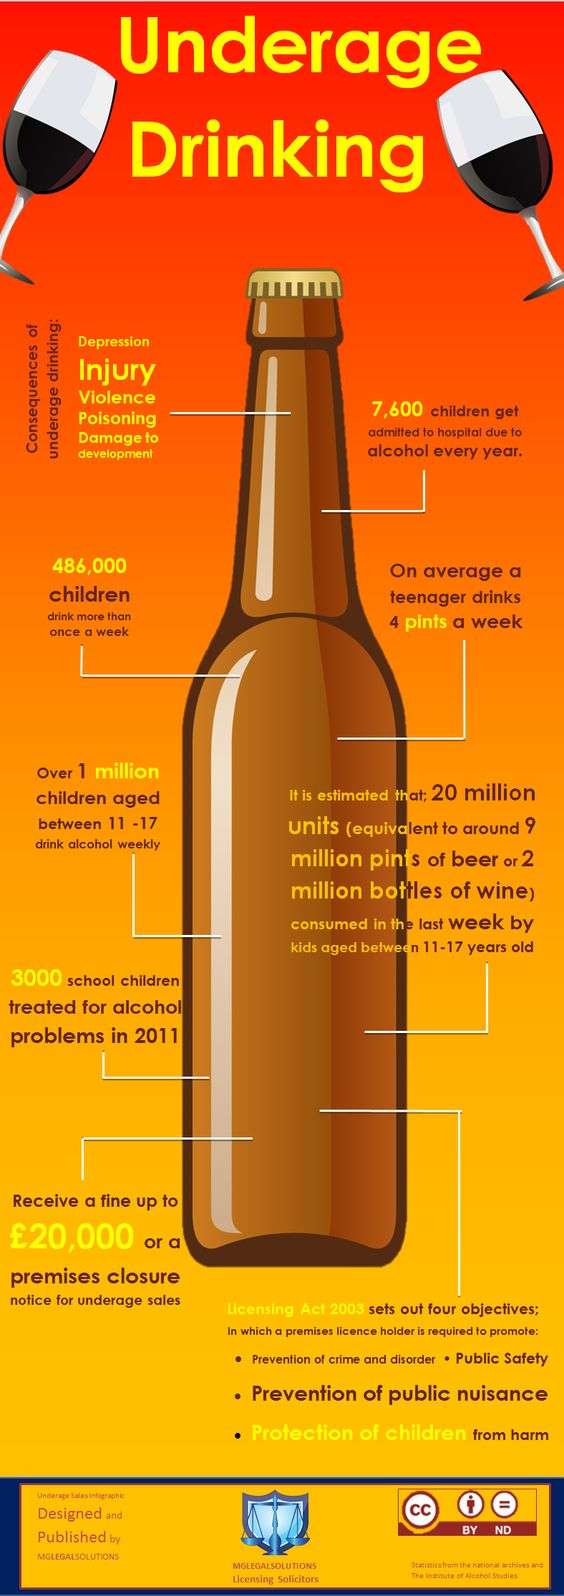 Teen binge drinking incidence